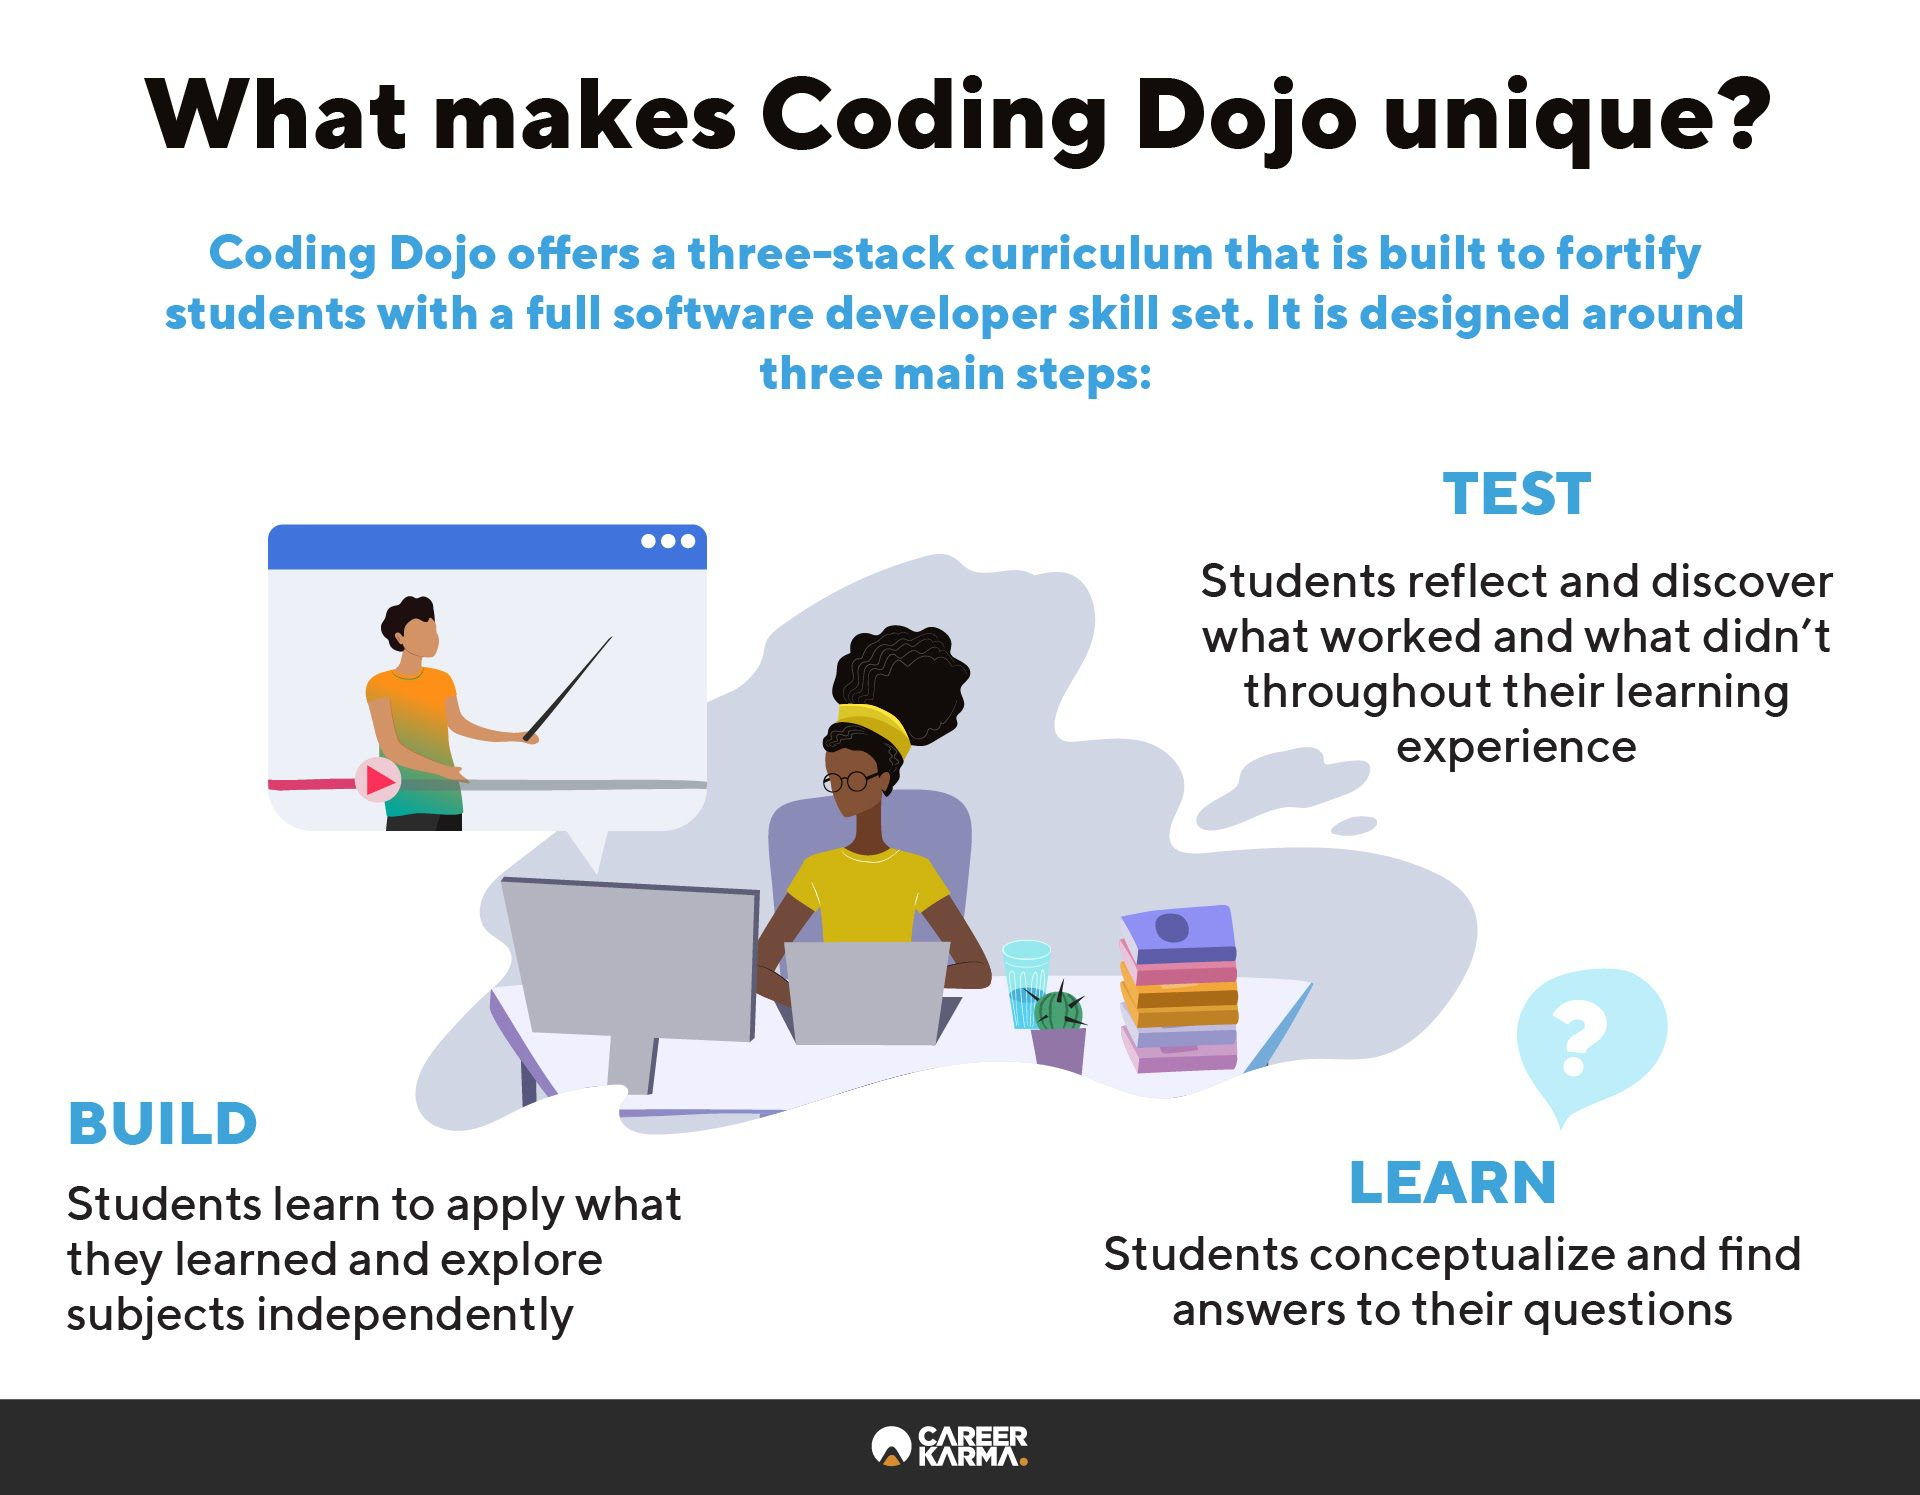 An infographic covering what makes Coding Dojo's curriculum unique